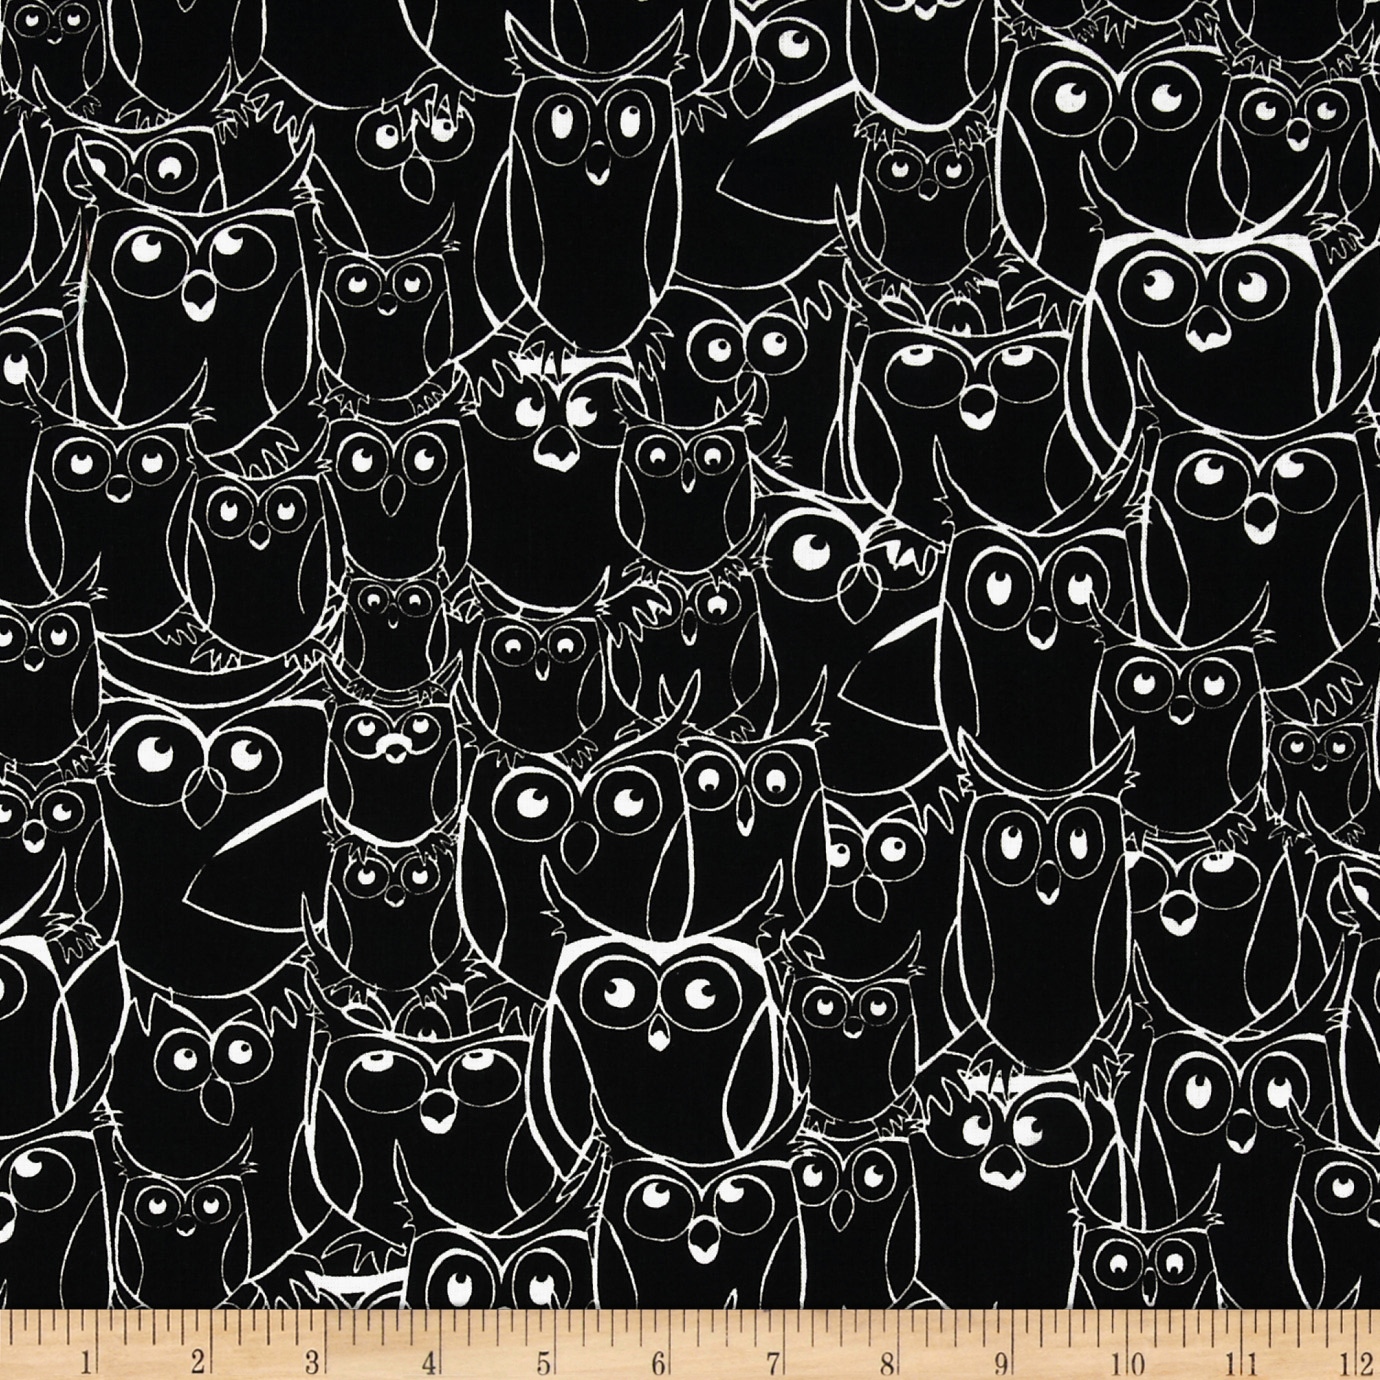 Nite Owls Sketched Owls Black/White Fabric